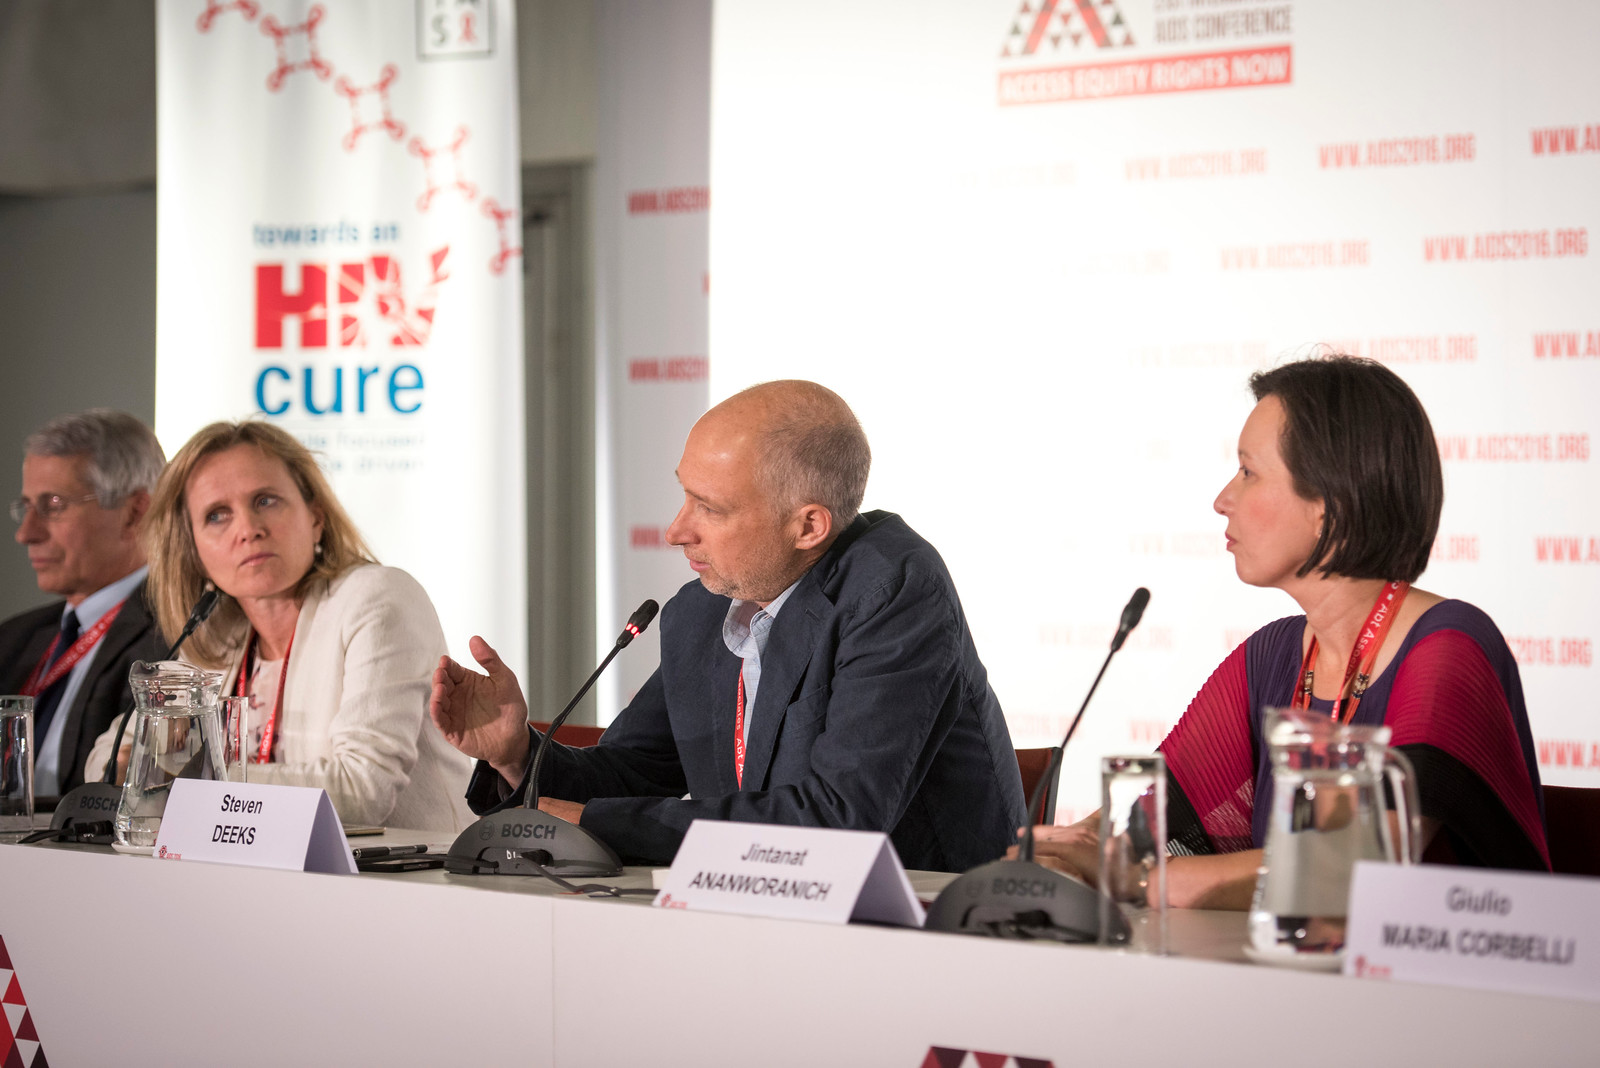 HIV cure research strategy launched - HIV Cure